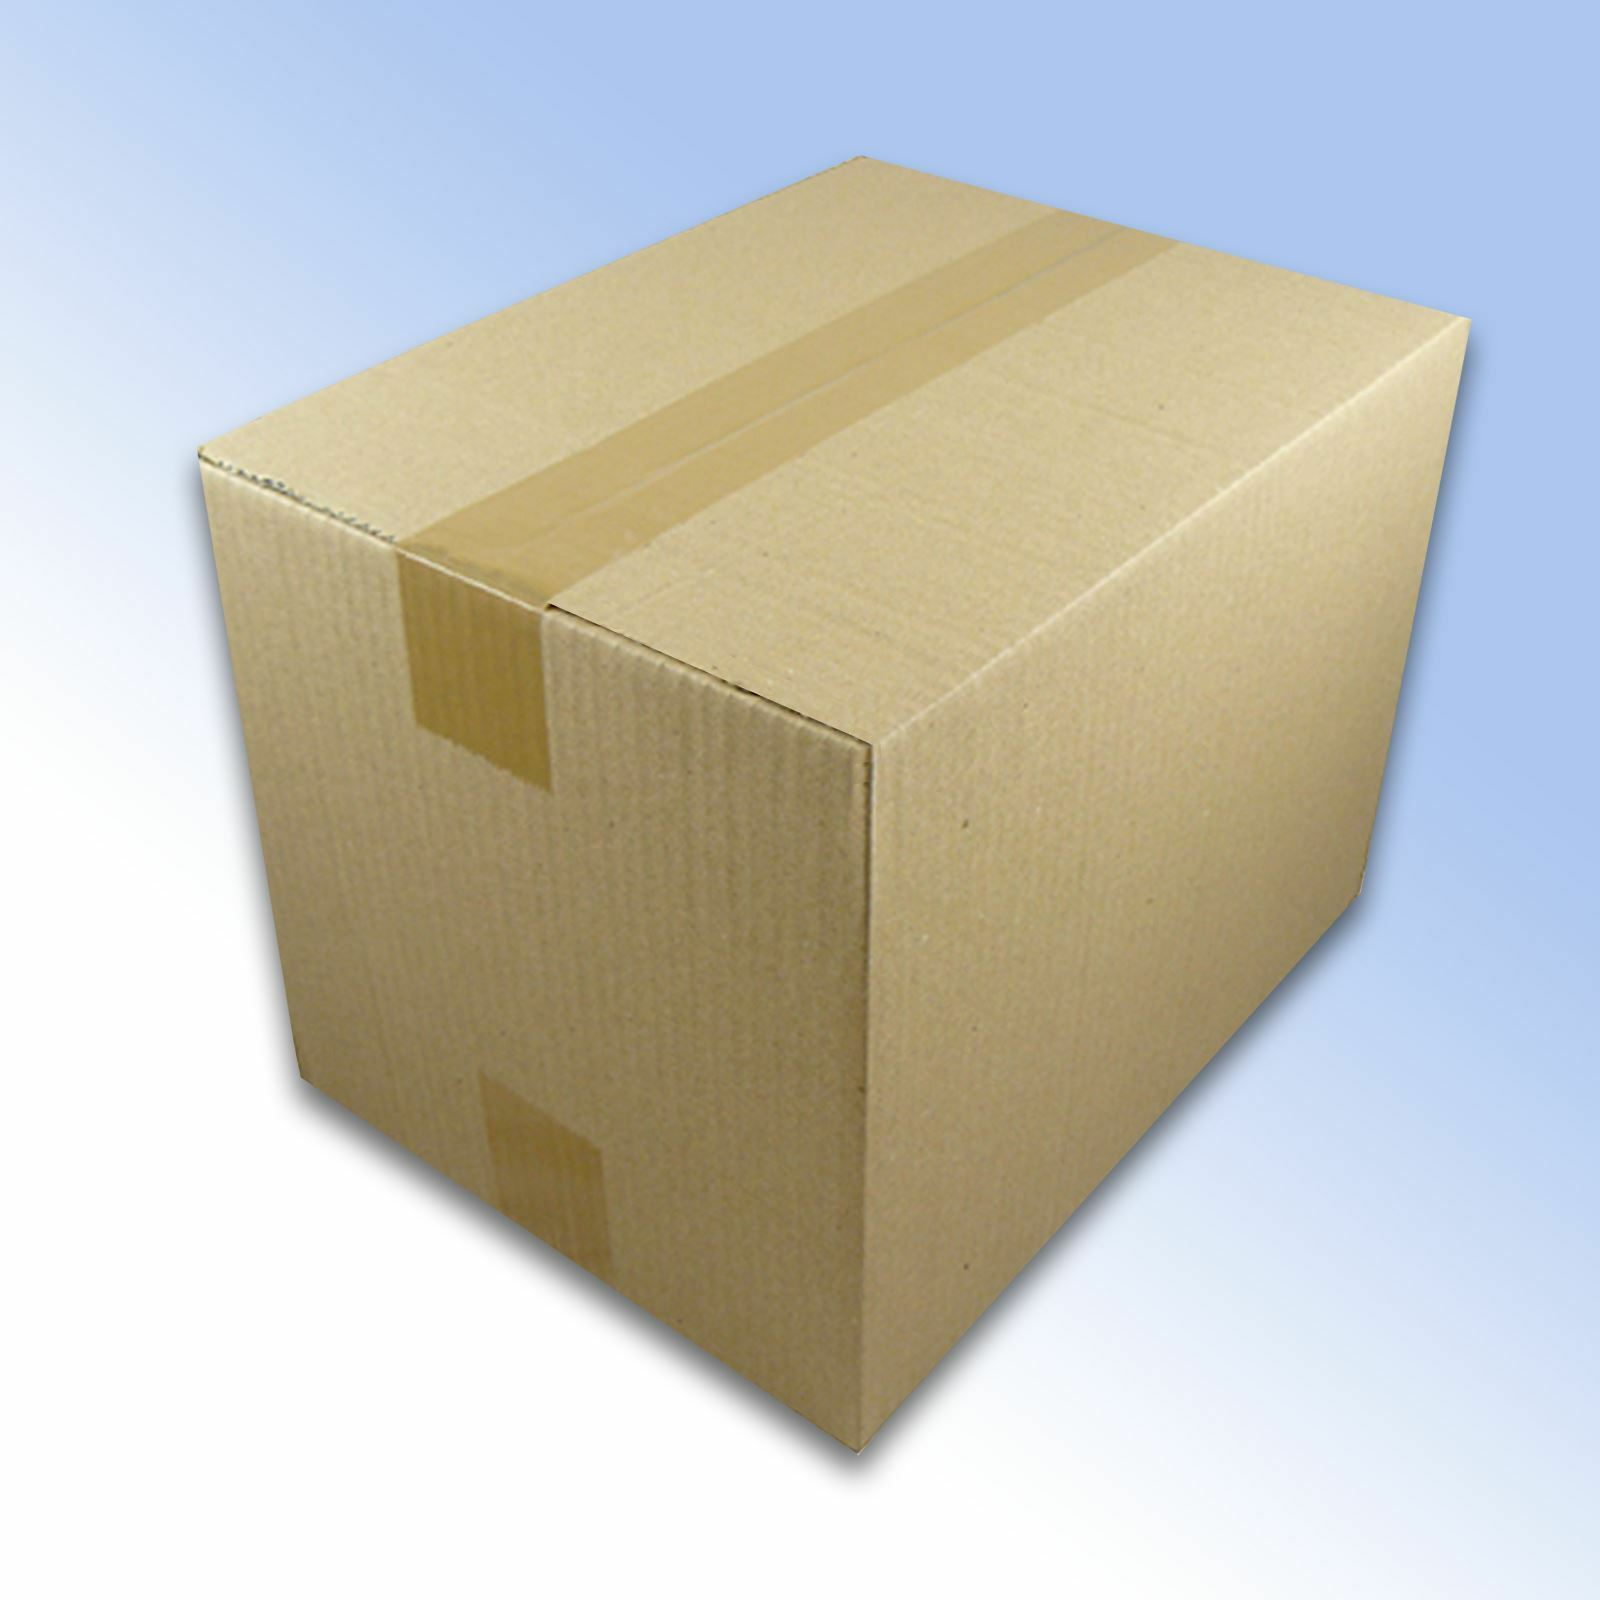 Strong Double Wall Cardboard Cartons Boxes - All Sizes